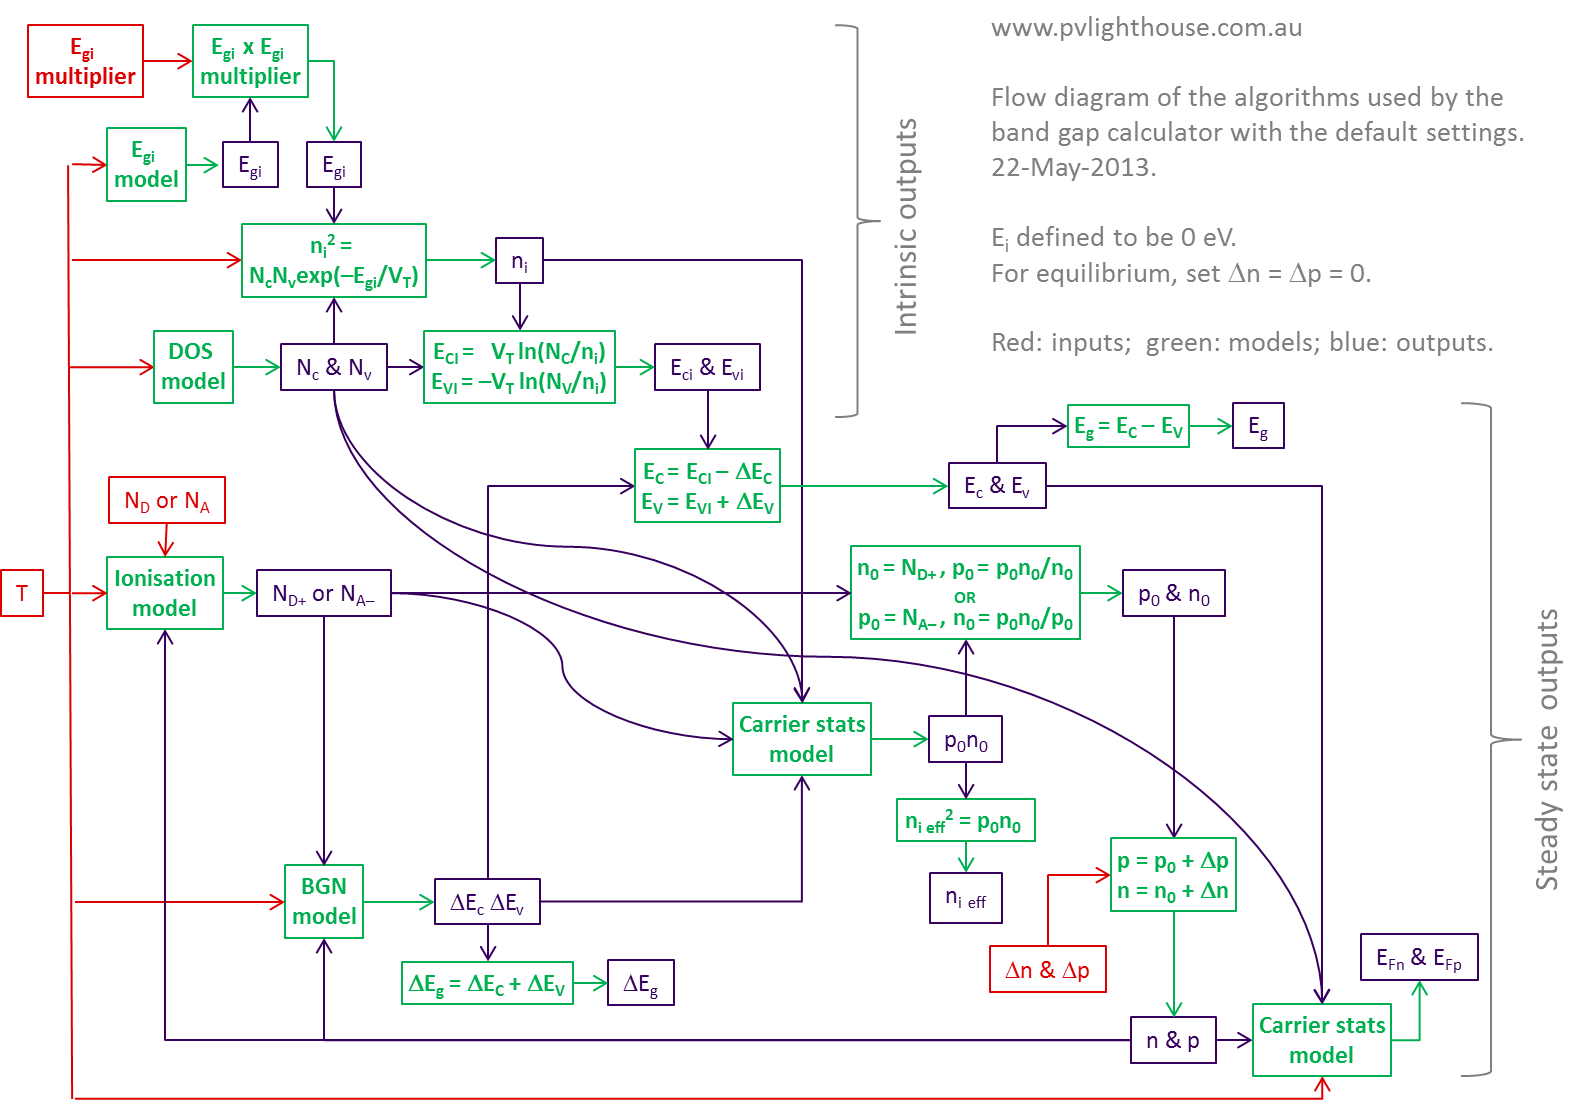 hight resolution of flow diagram of the default algorithms in the band gap calculator